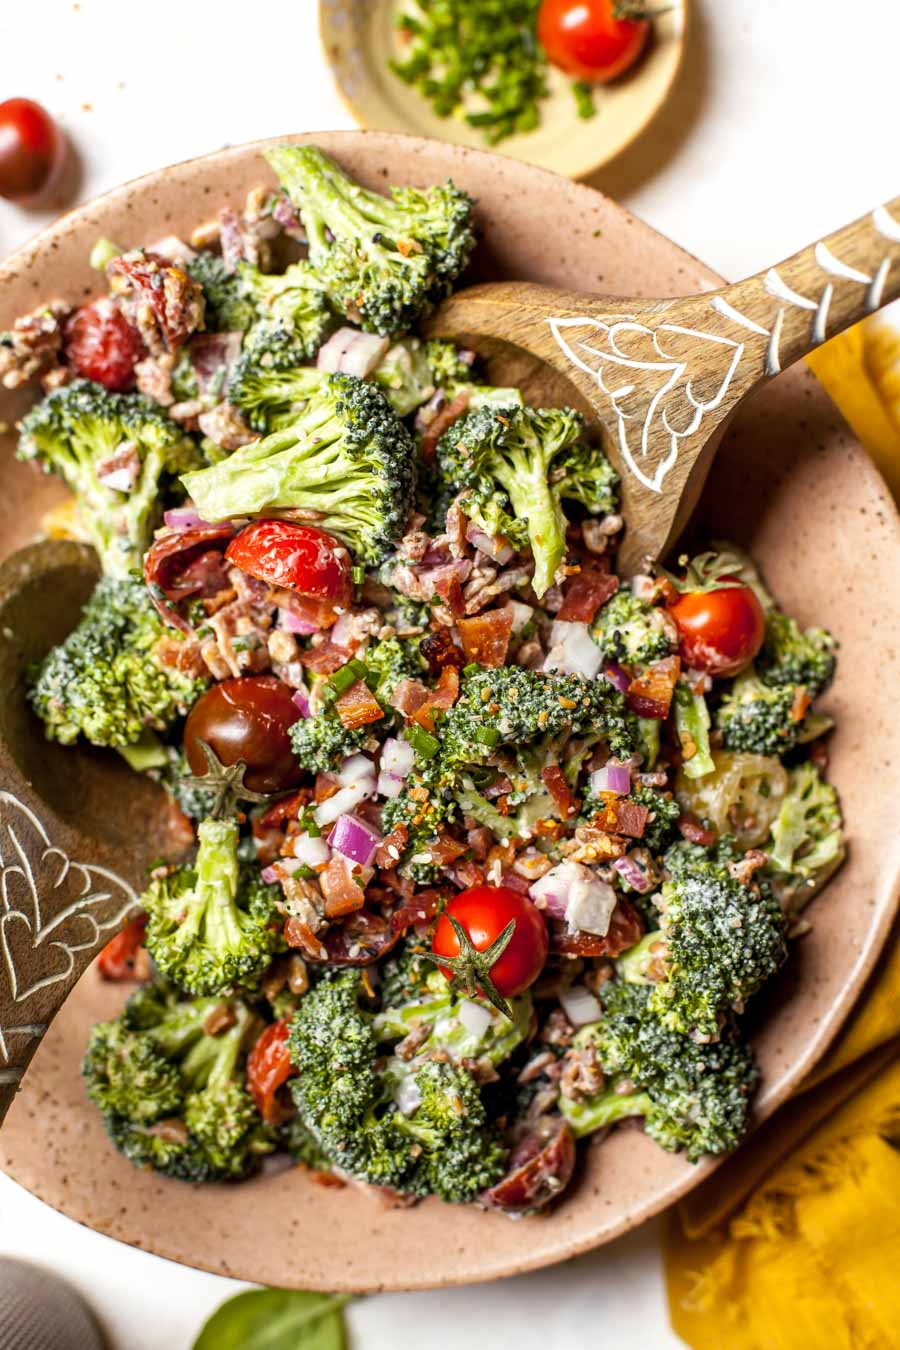 Everything Bagel Spiced Broccoli Salad